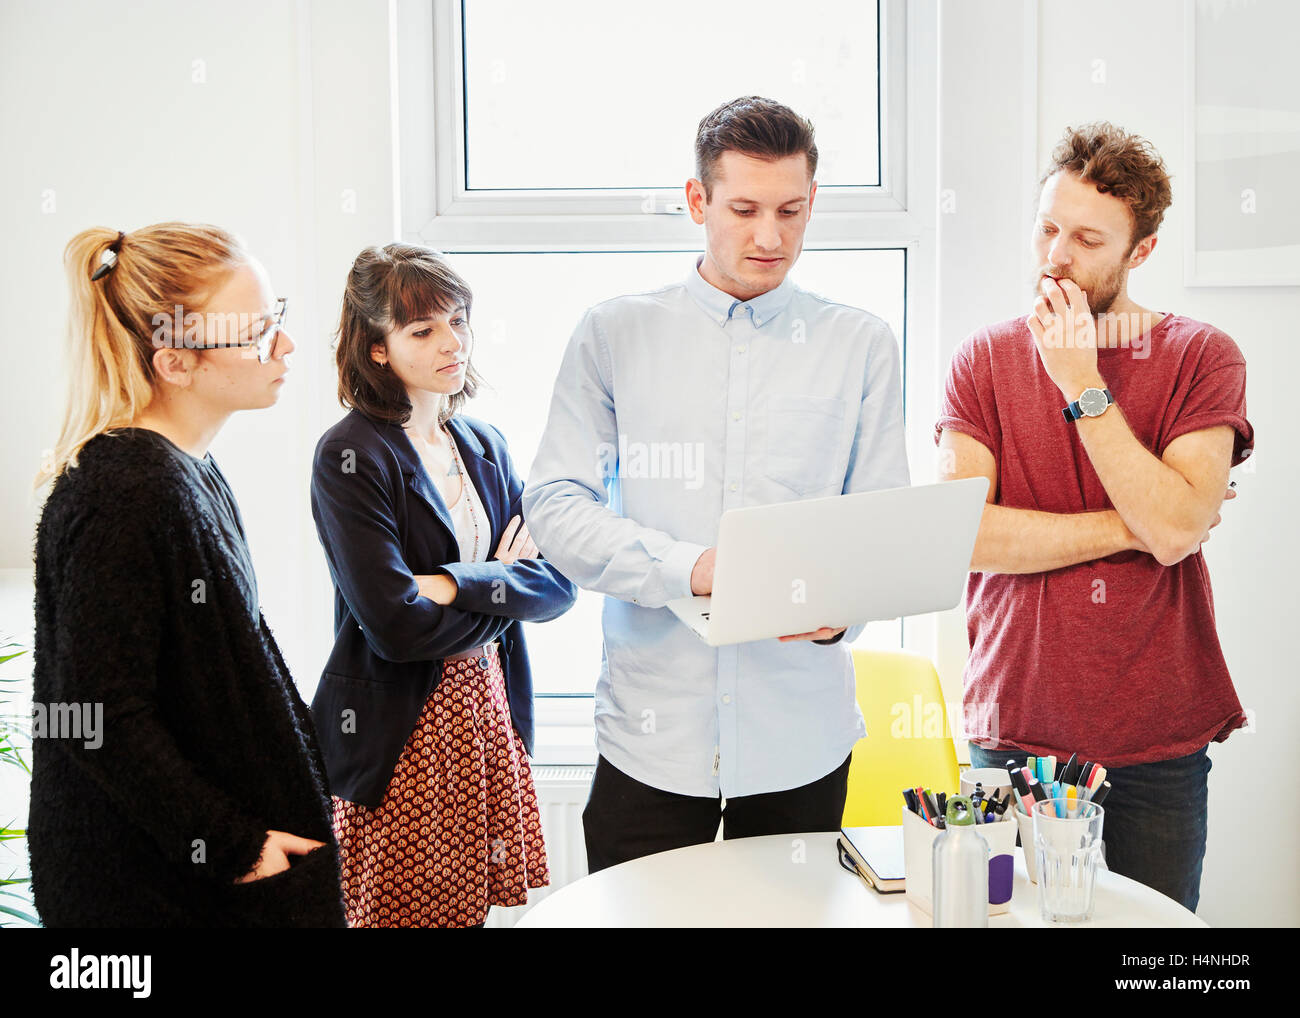 Four people around a table at a business meeting, looking at a laptop screen. - Stock Image